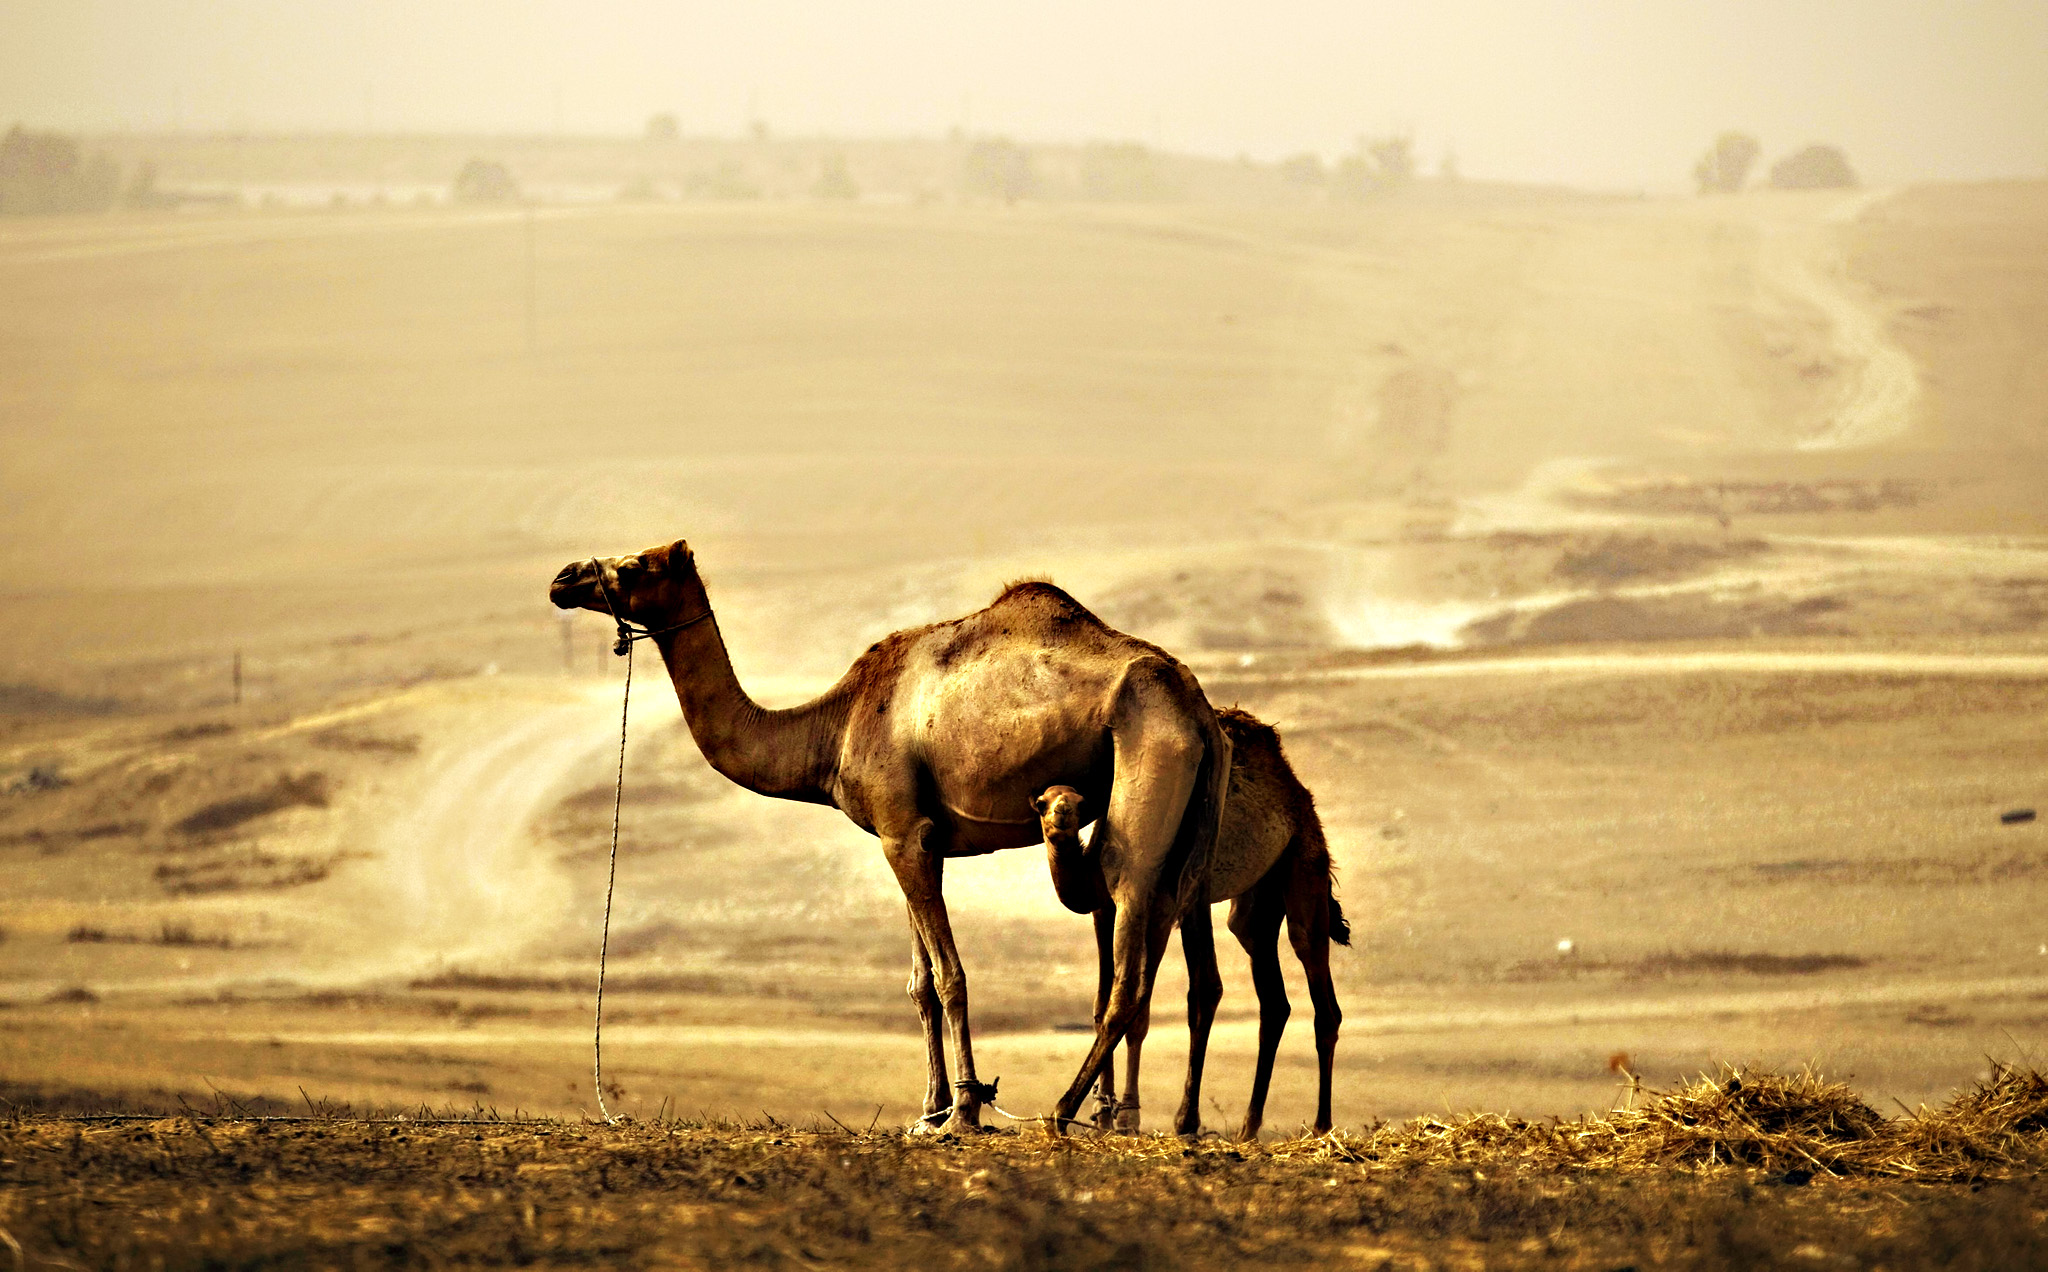 A camel and her calf stand in field during sandstorm near Rahat, southern Israel...A camel and her calf stand in a field during a sandstorm near Rahat, southern Israel September 10, 2015. A heavy sandstorm, which swept across parts of the Middle East on Tuesday, could still be felt in Israel on Thursday